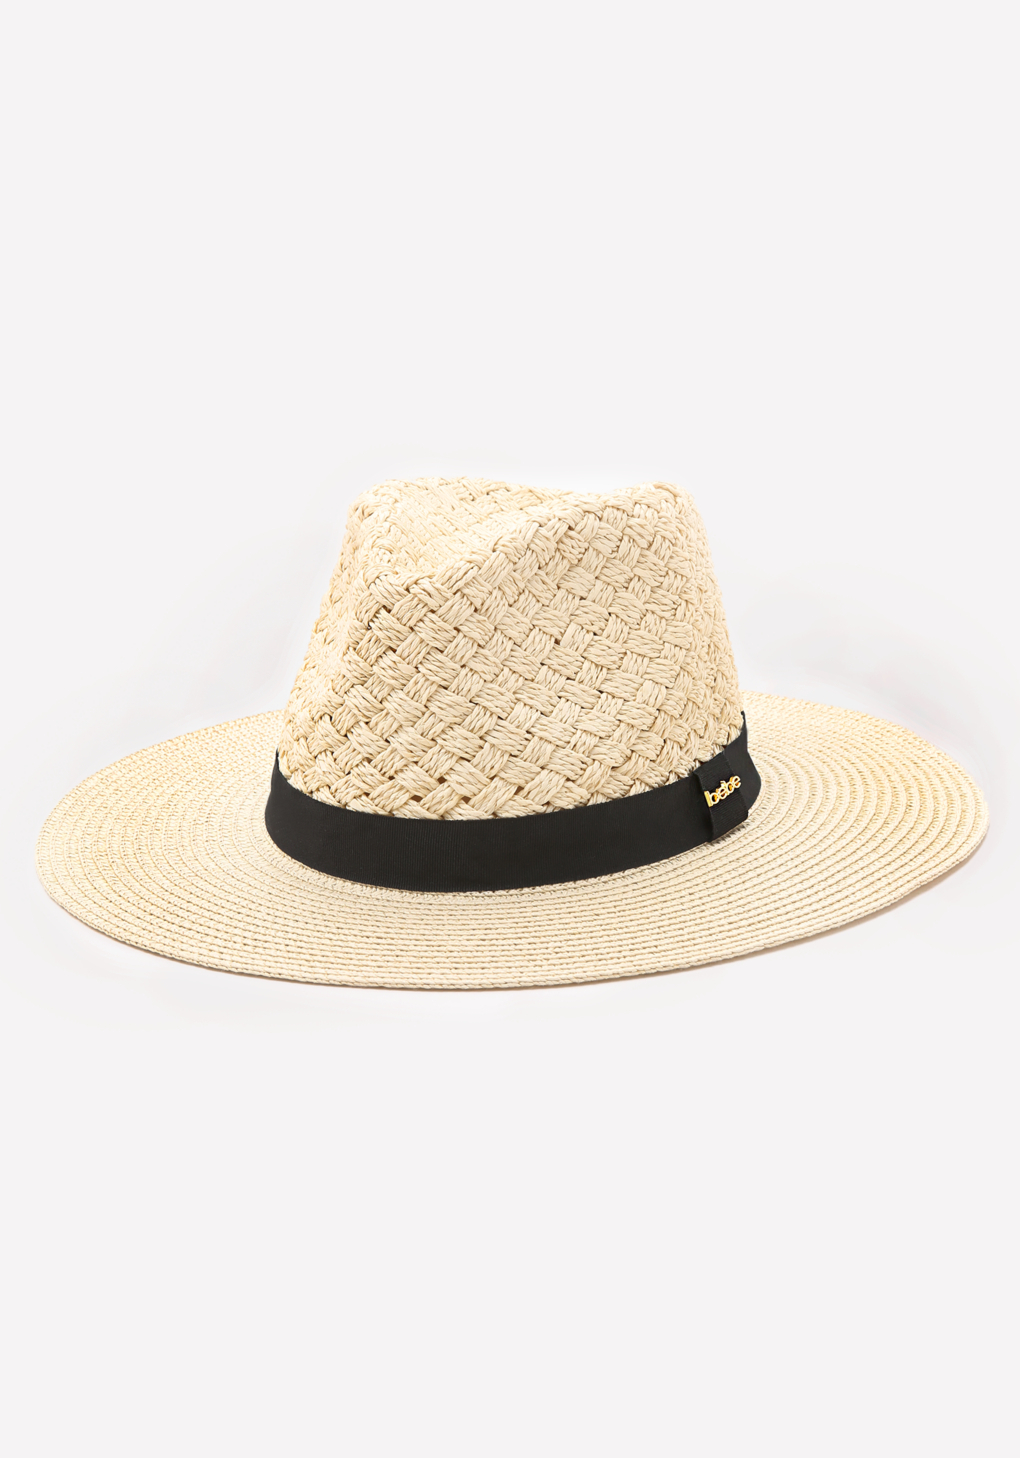 Lyst - Bebe Basket Weave Panama Hat in Natural 7764a9f9f044